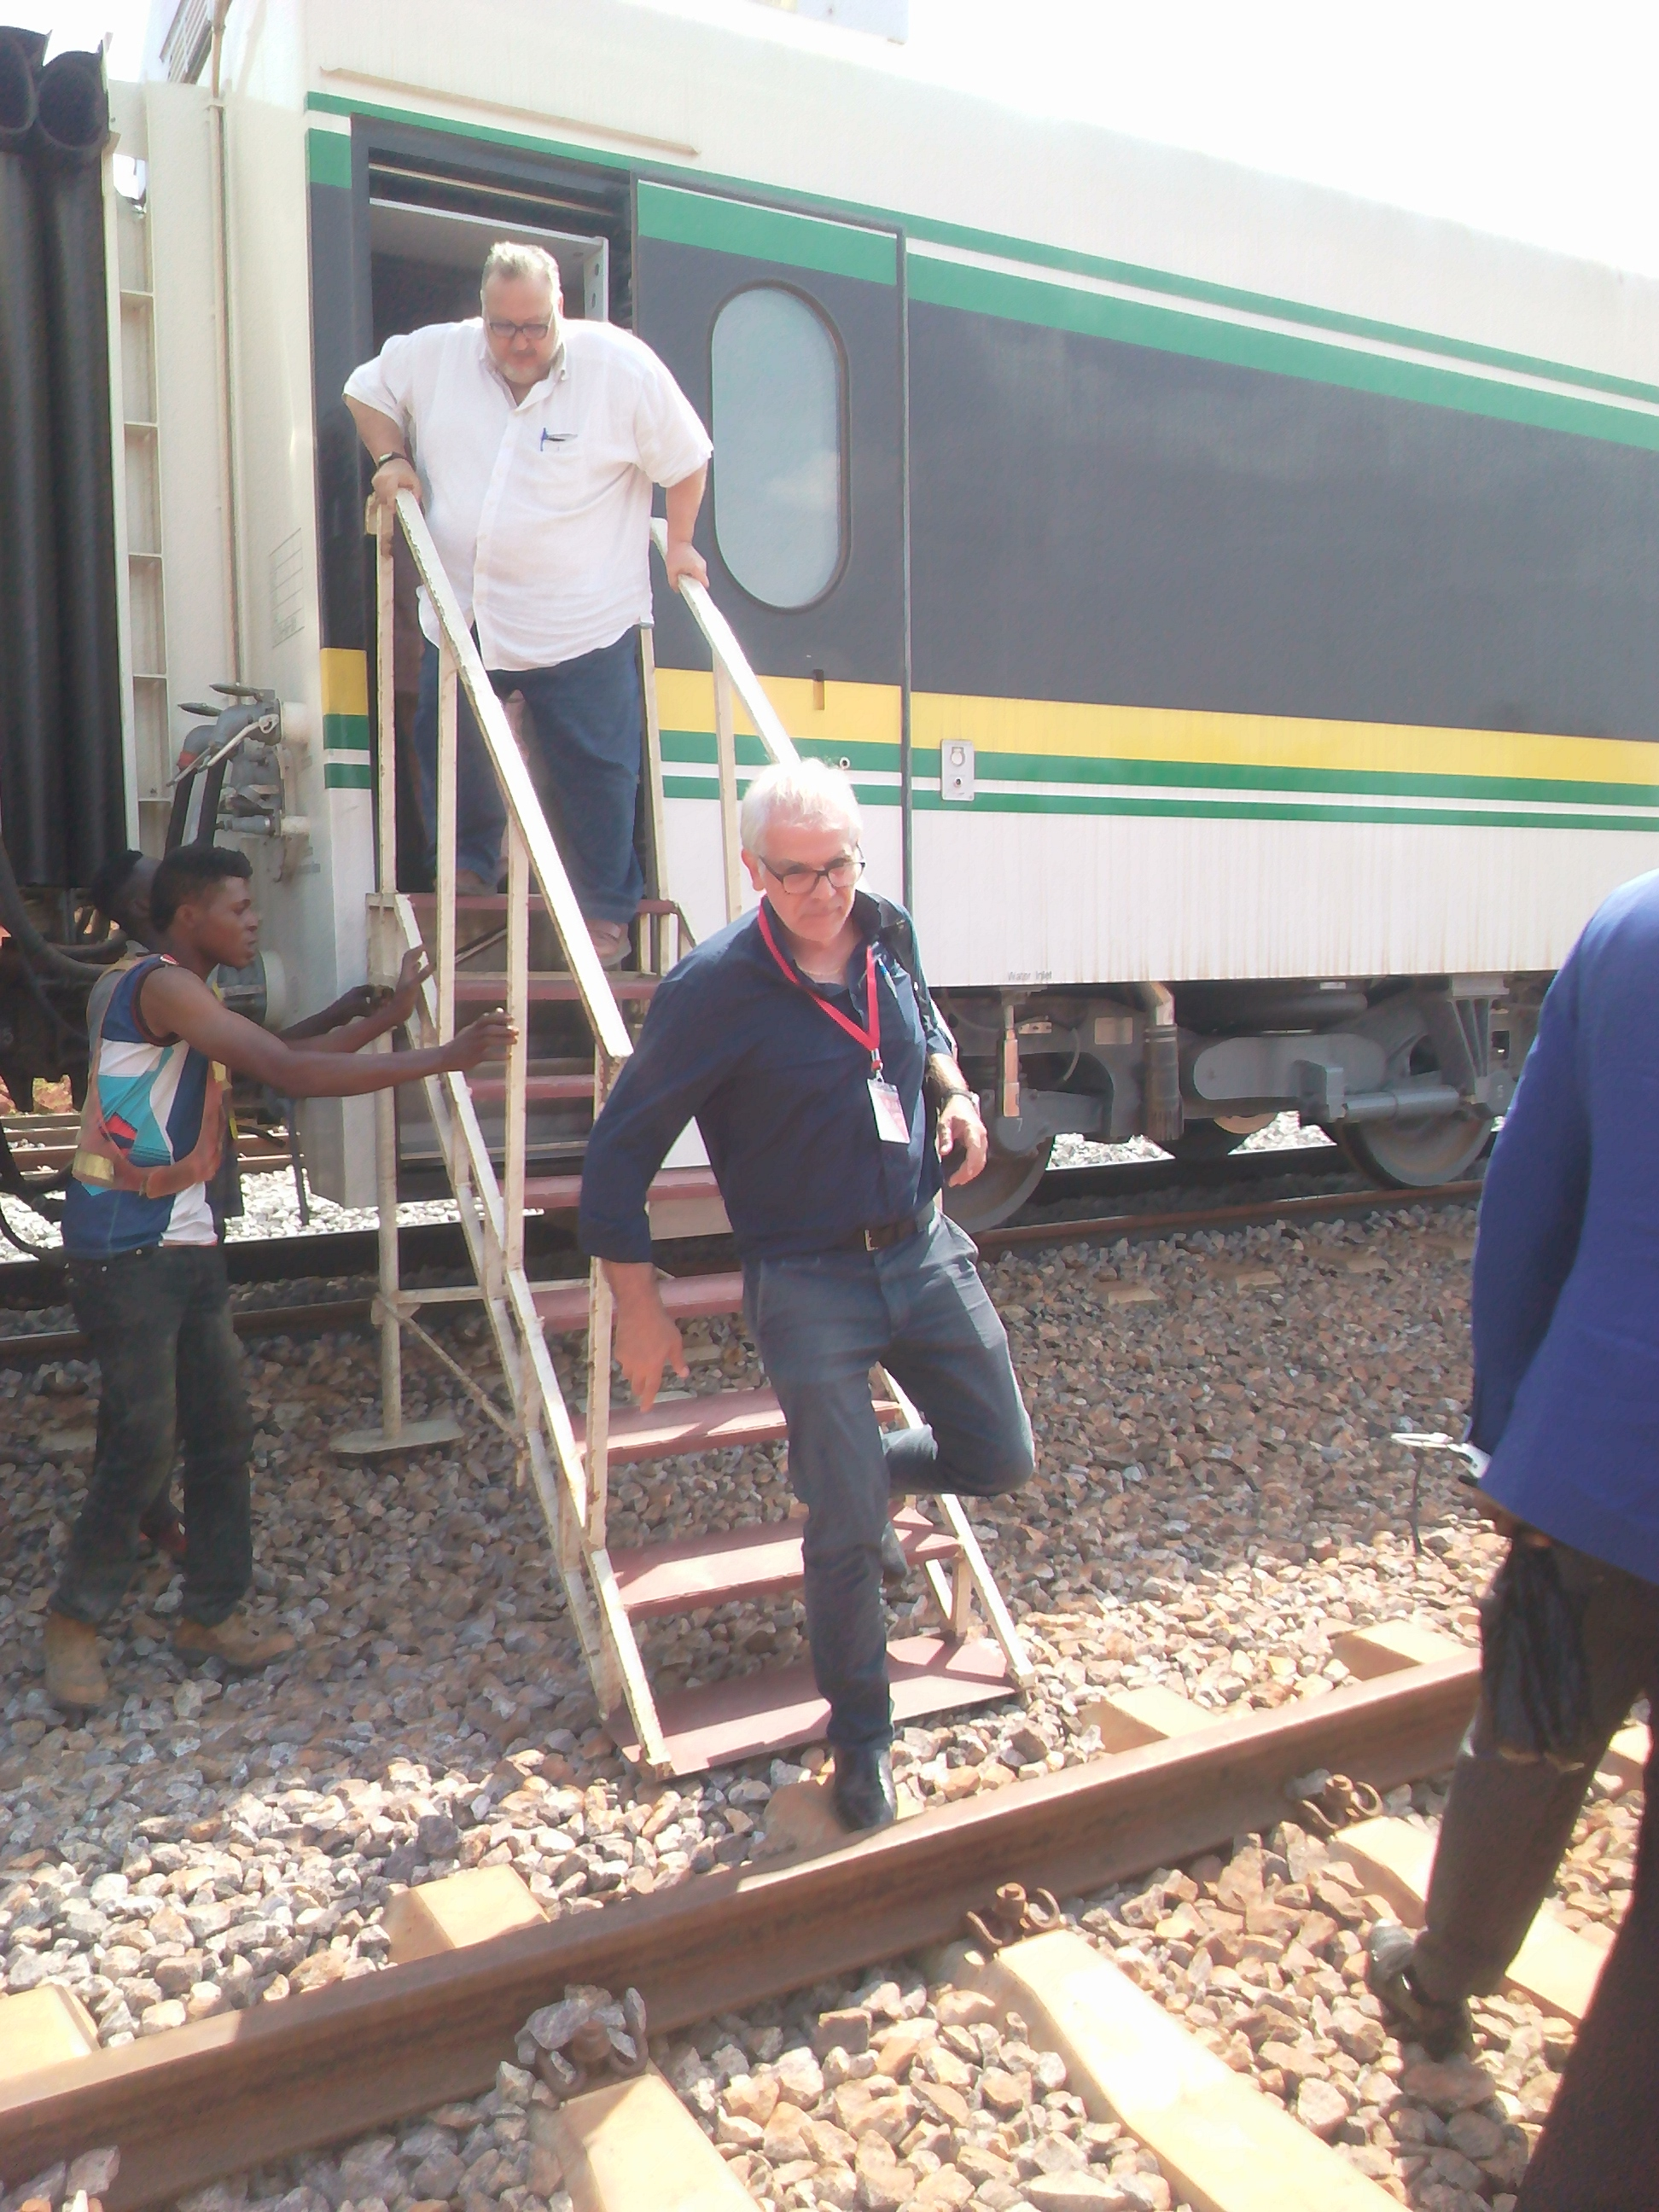 People alighting from train